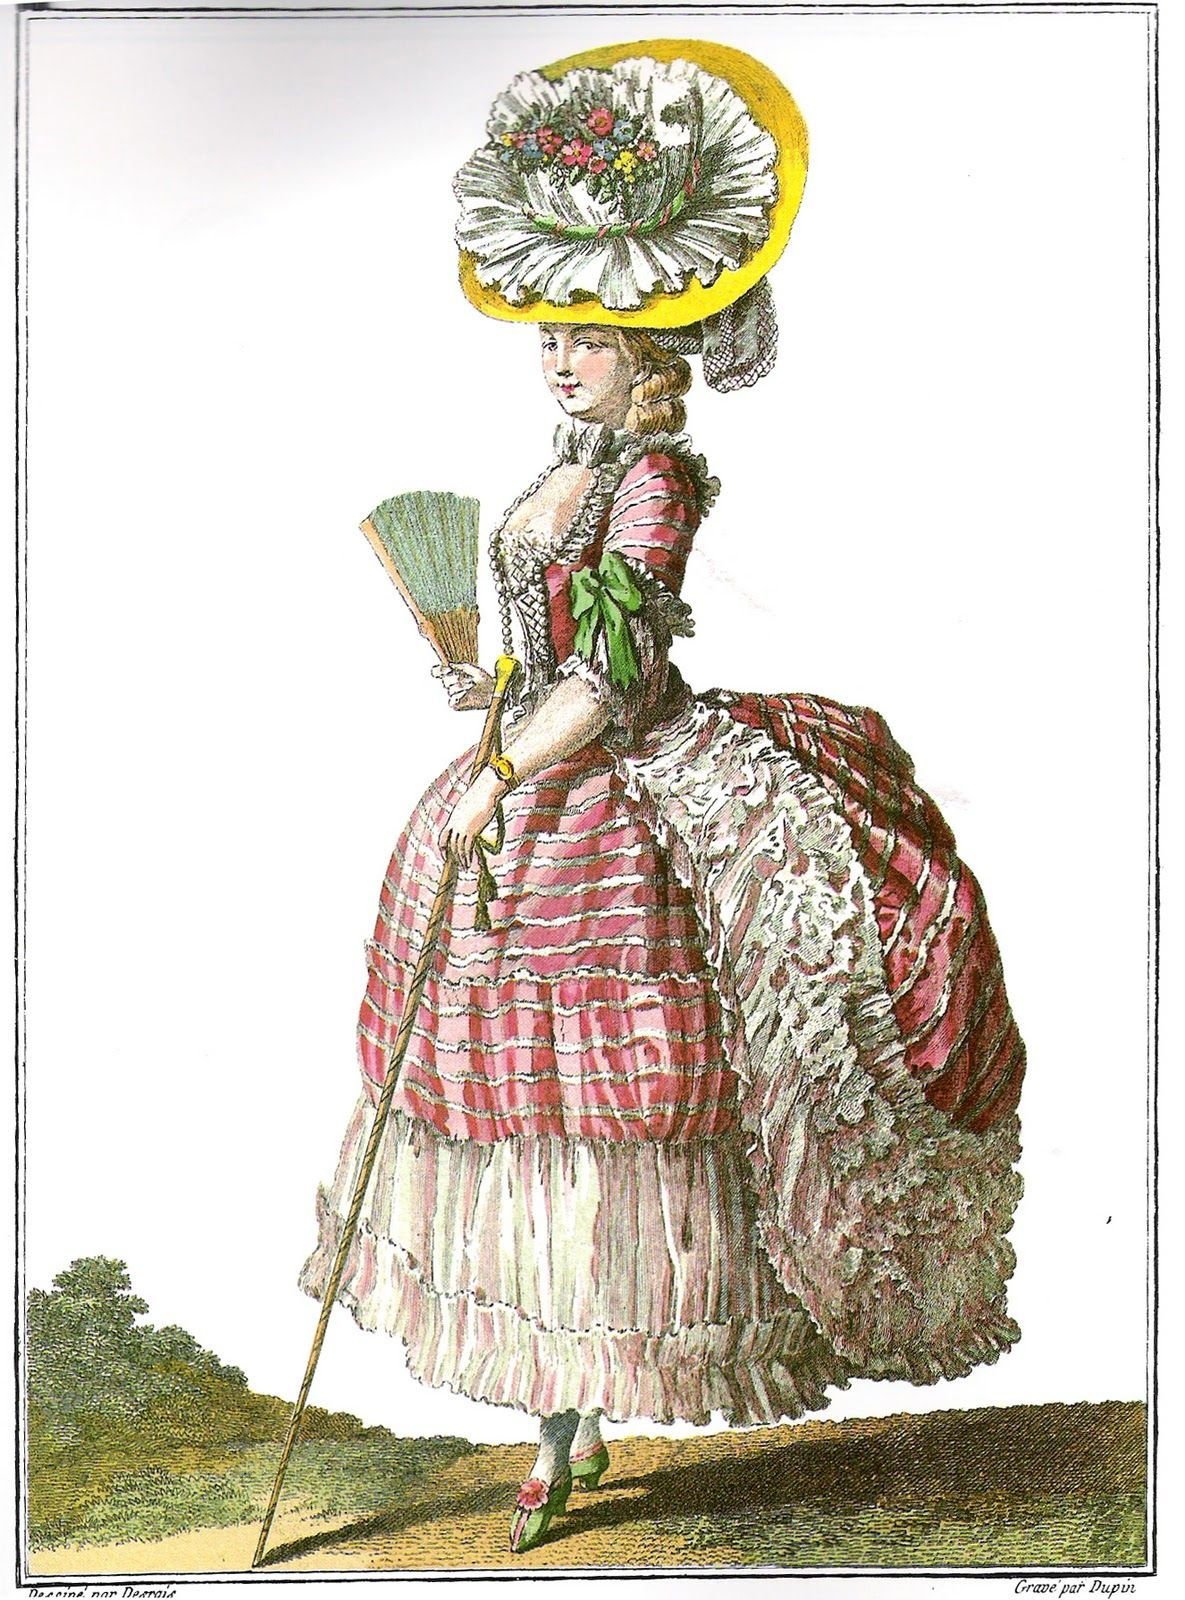 th century women s fashions th century french fashion found on 18th century women s fashions 18th century french fashion found on